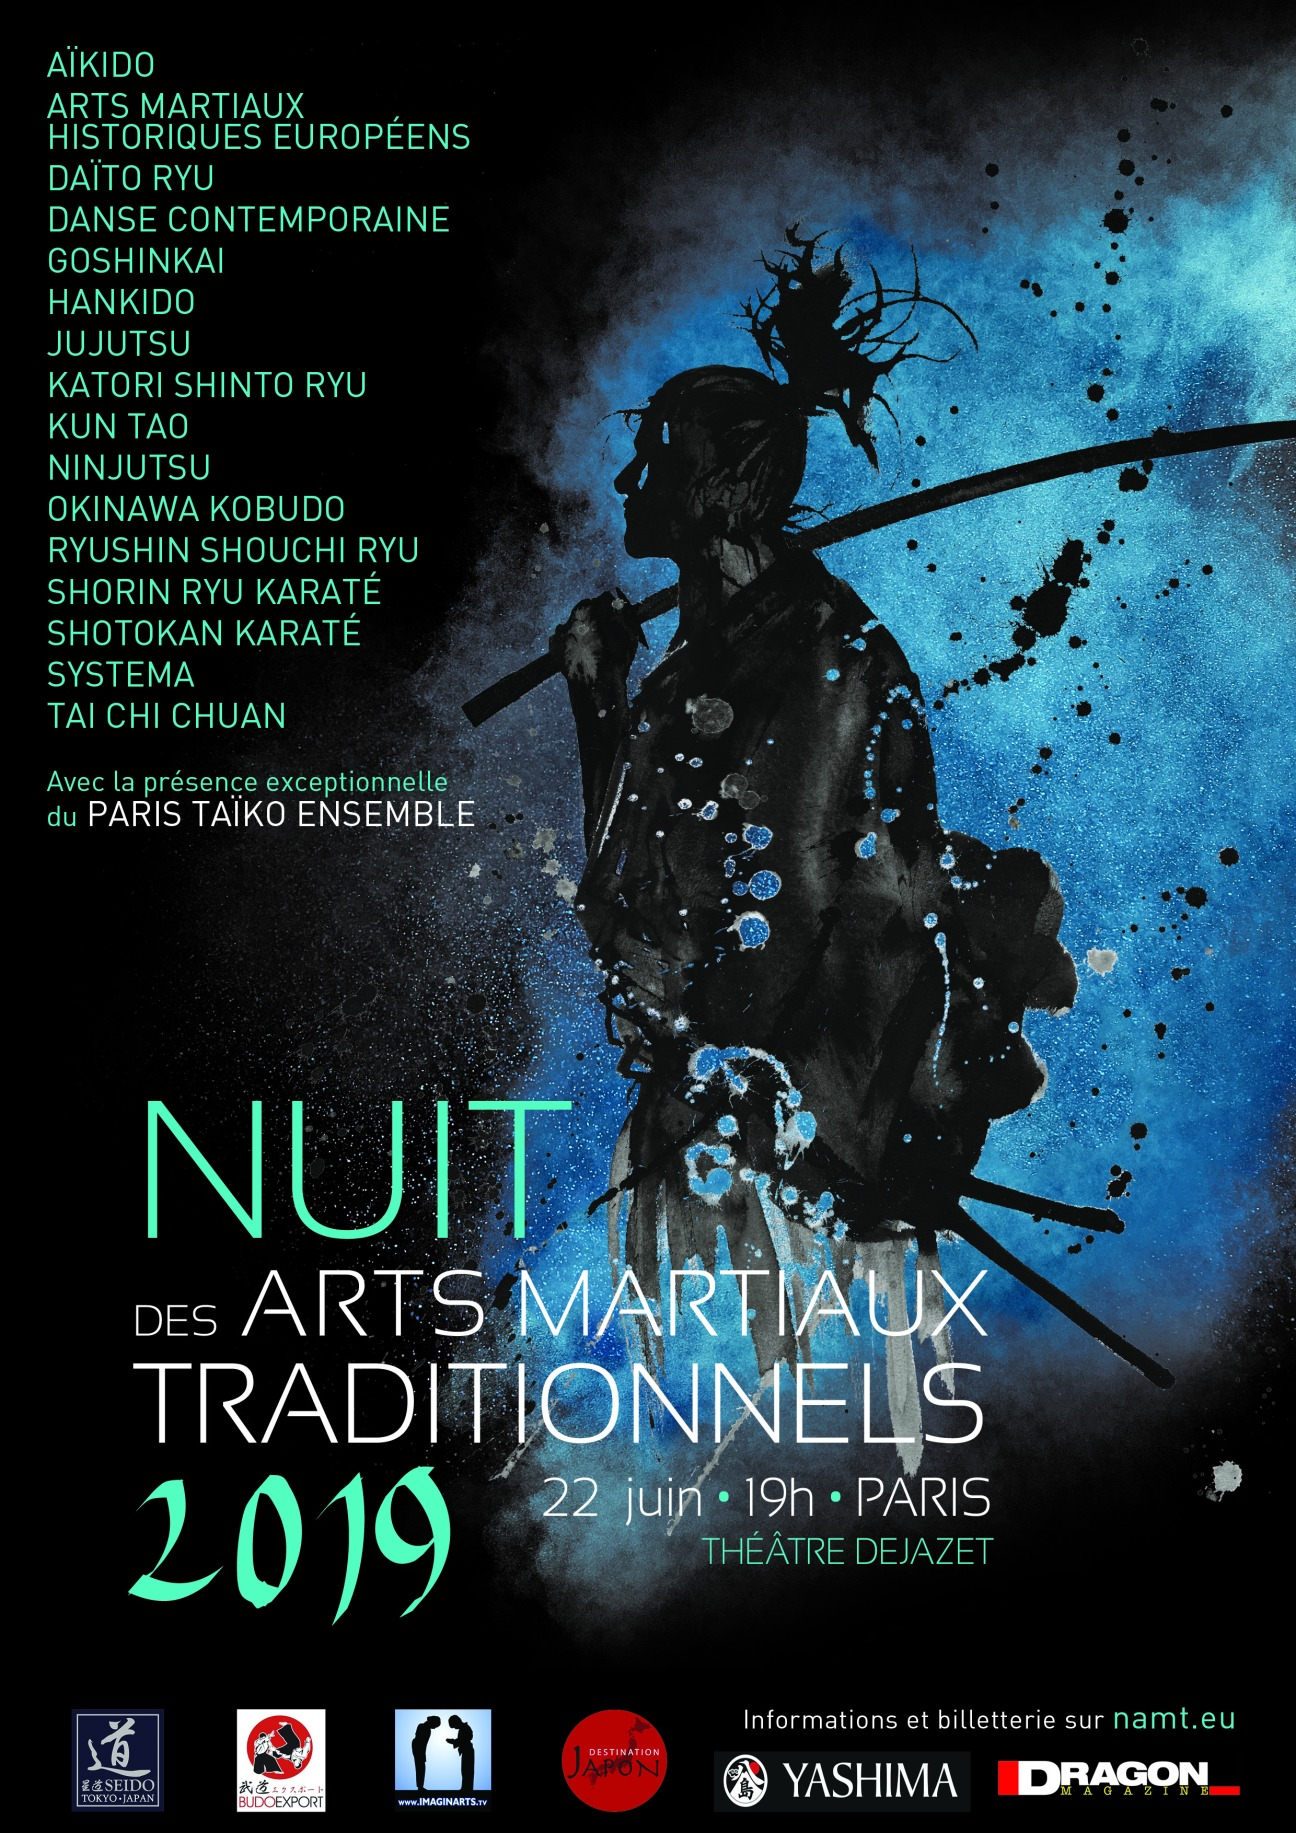 2019 06 22 NUIT DES ARTS MARTIAUX TRADITIONNELS PARIS NAMT